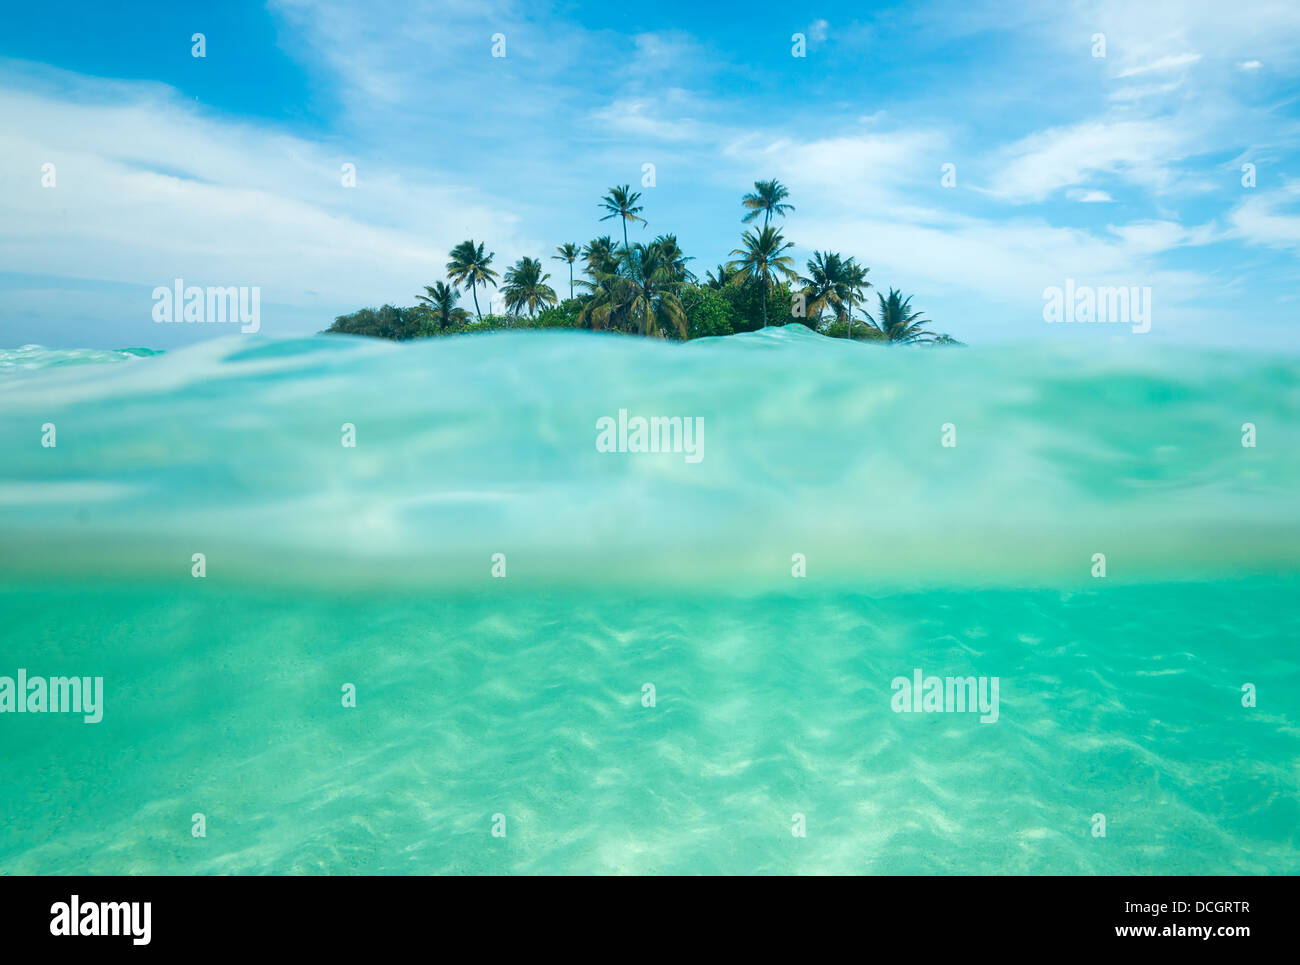 Tropical island in the ocean - Stock Image